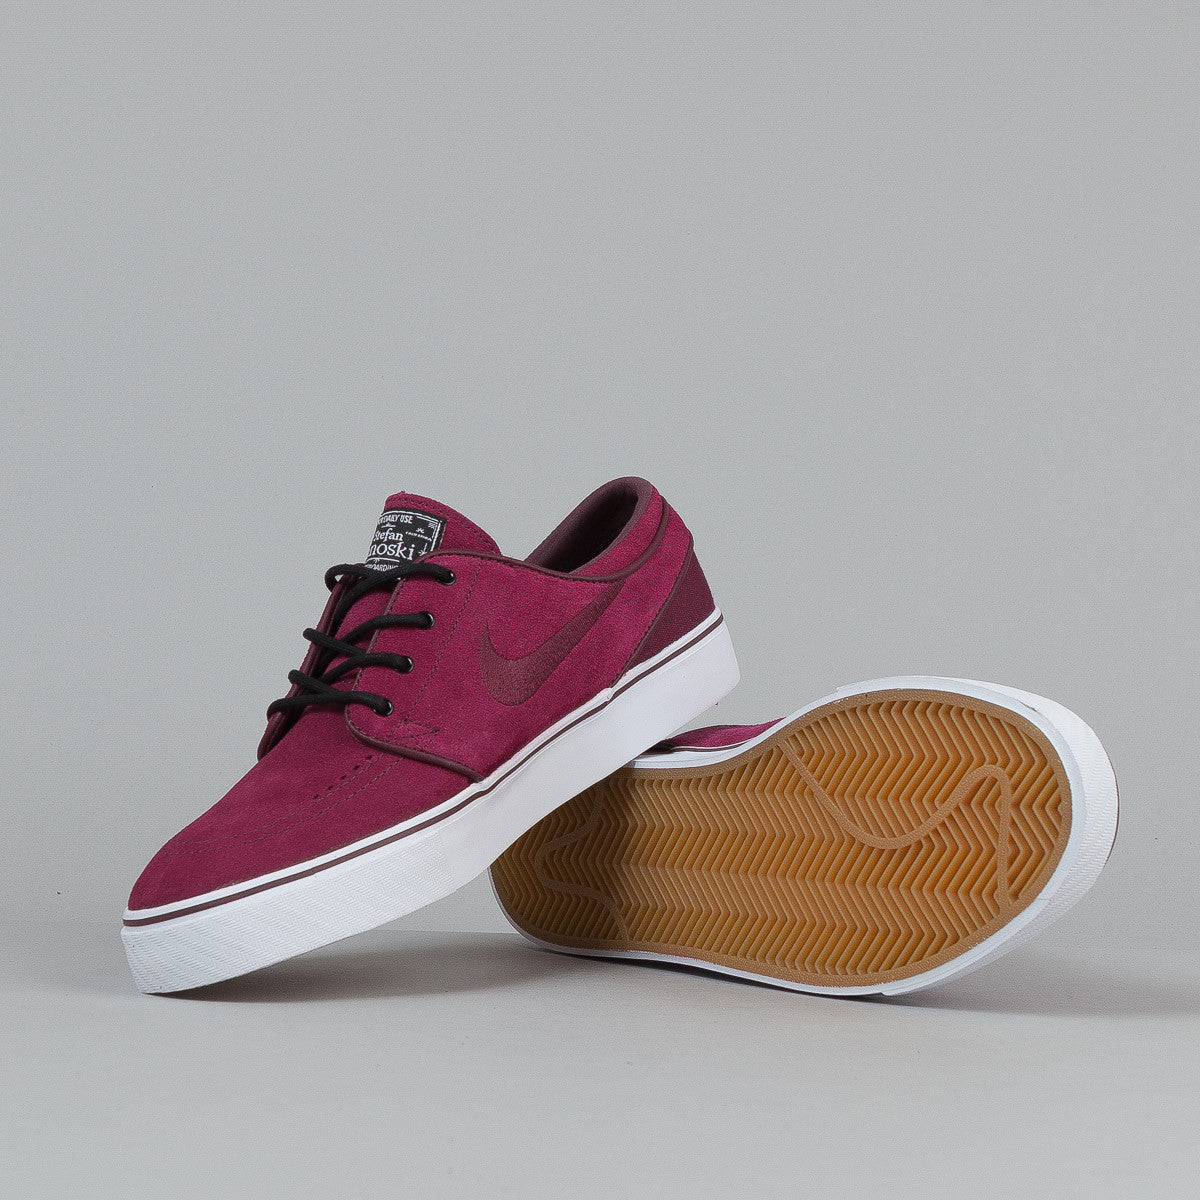 Nike SB Stefan Janoski Red Oxide / Black Gum - Light Brown